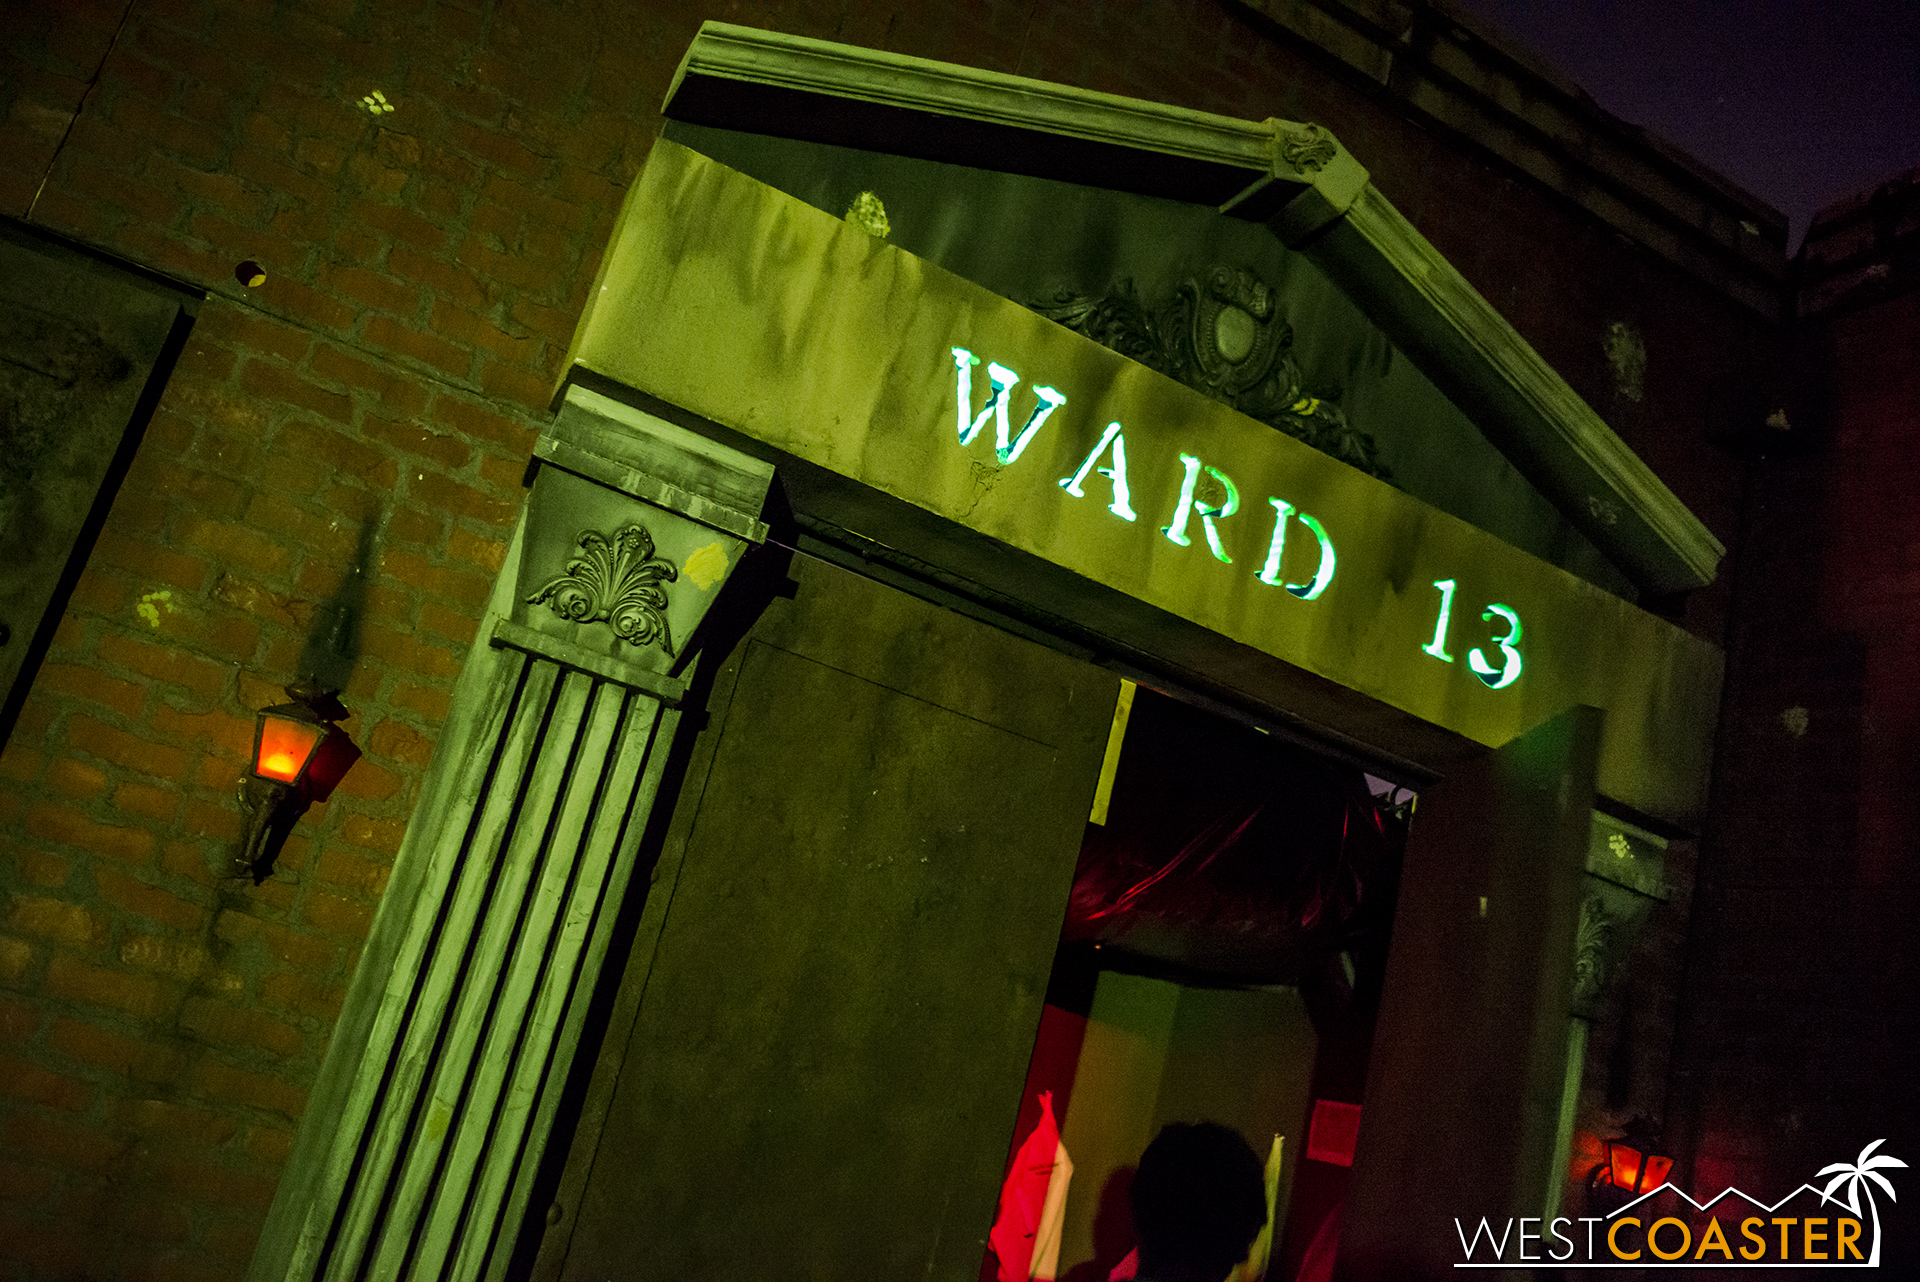 It was wacky and amusingly fun, but then it was time to get dark and finally enter the dreaded Ward 13 of the sanitarium.